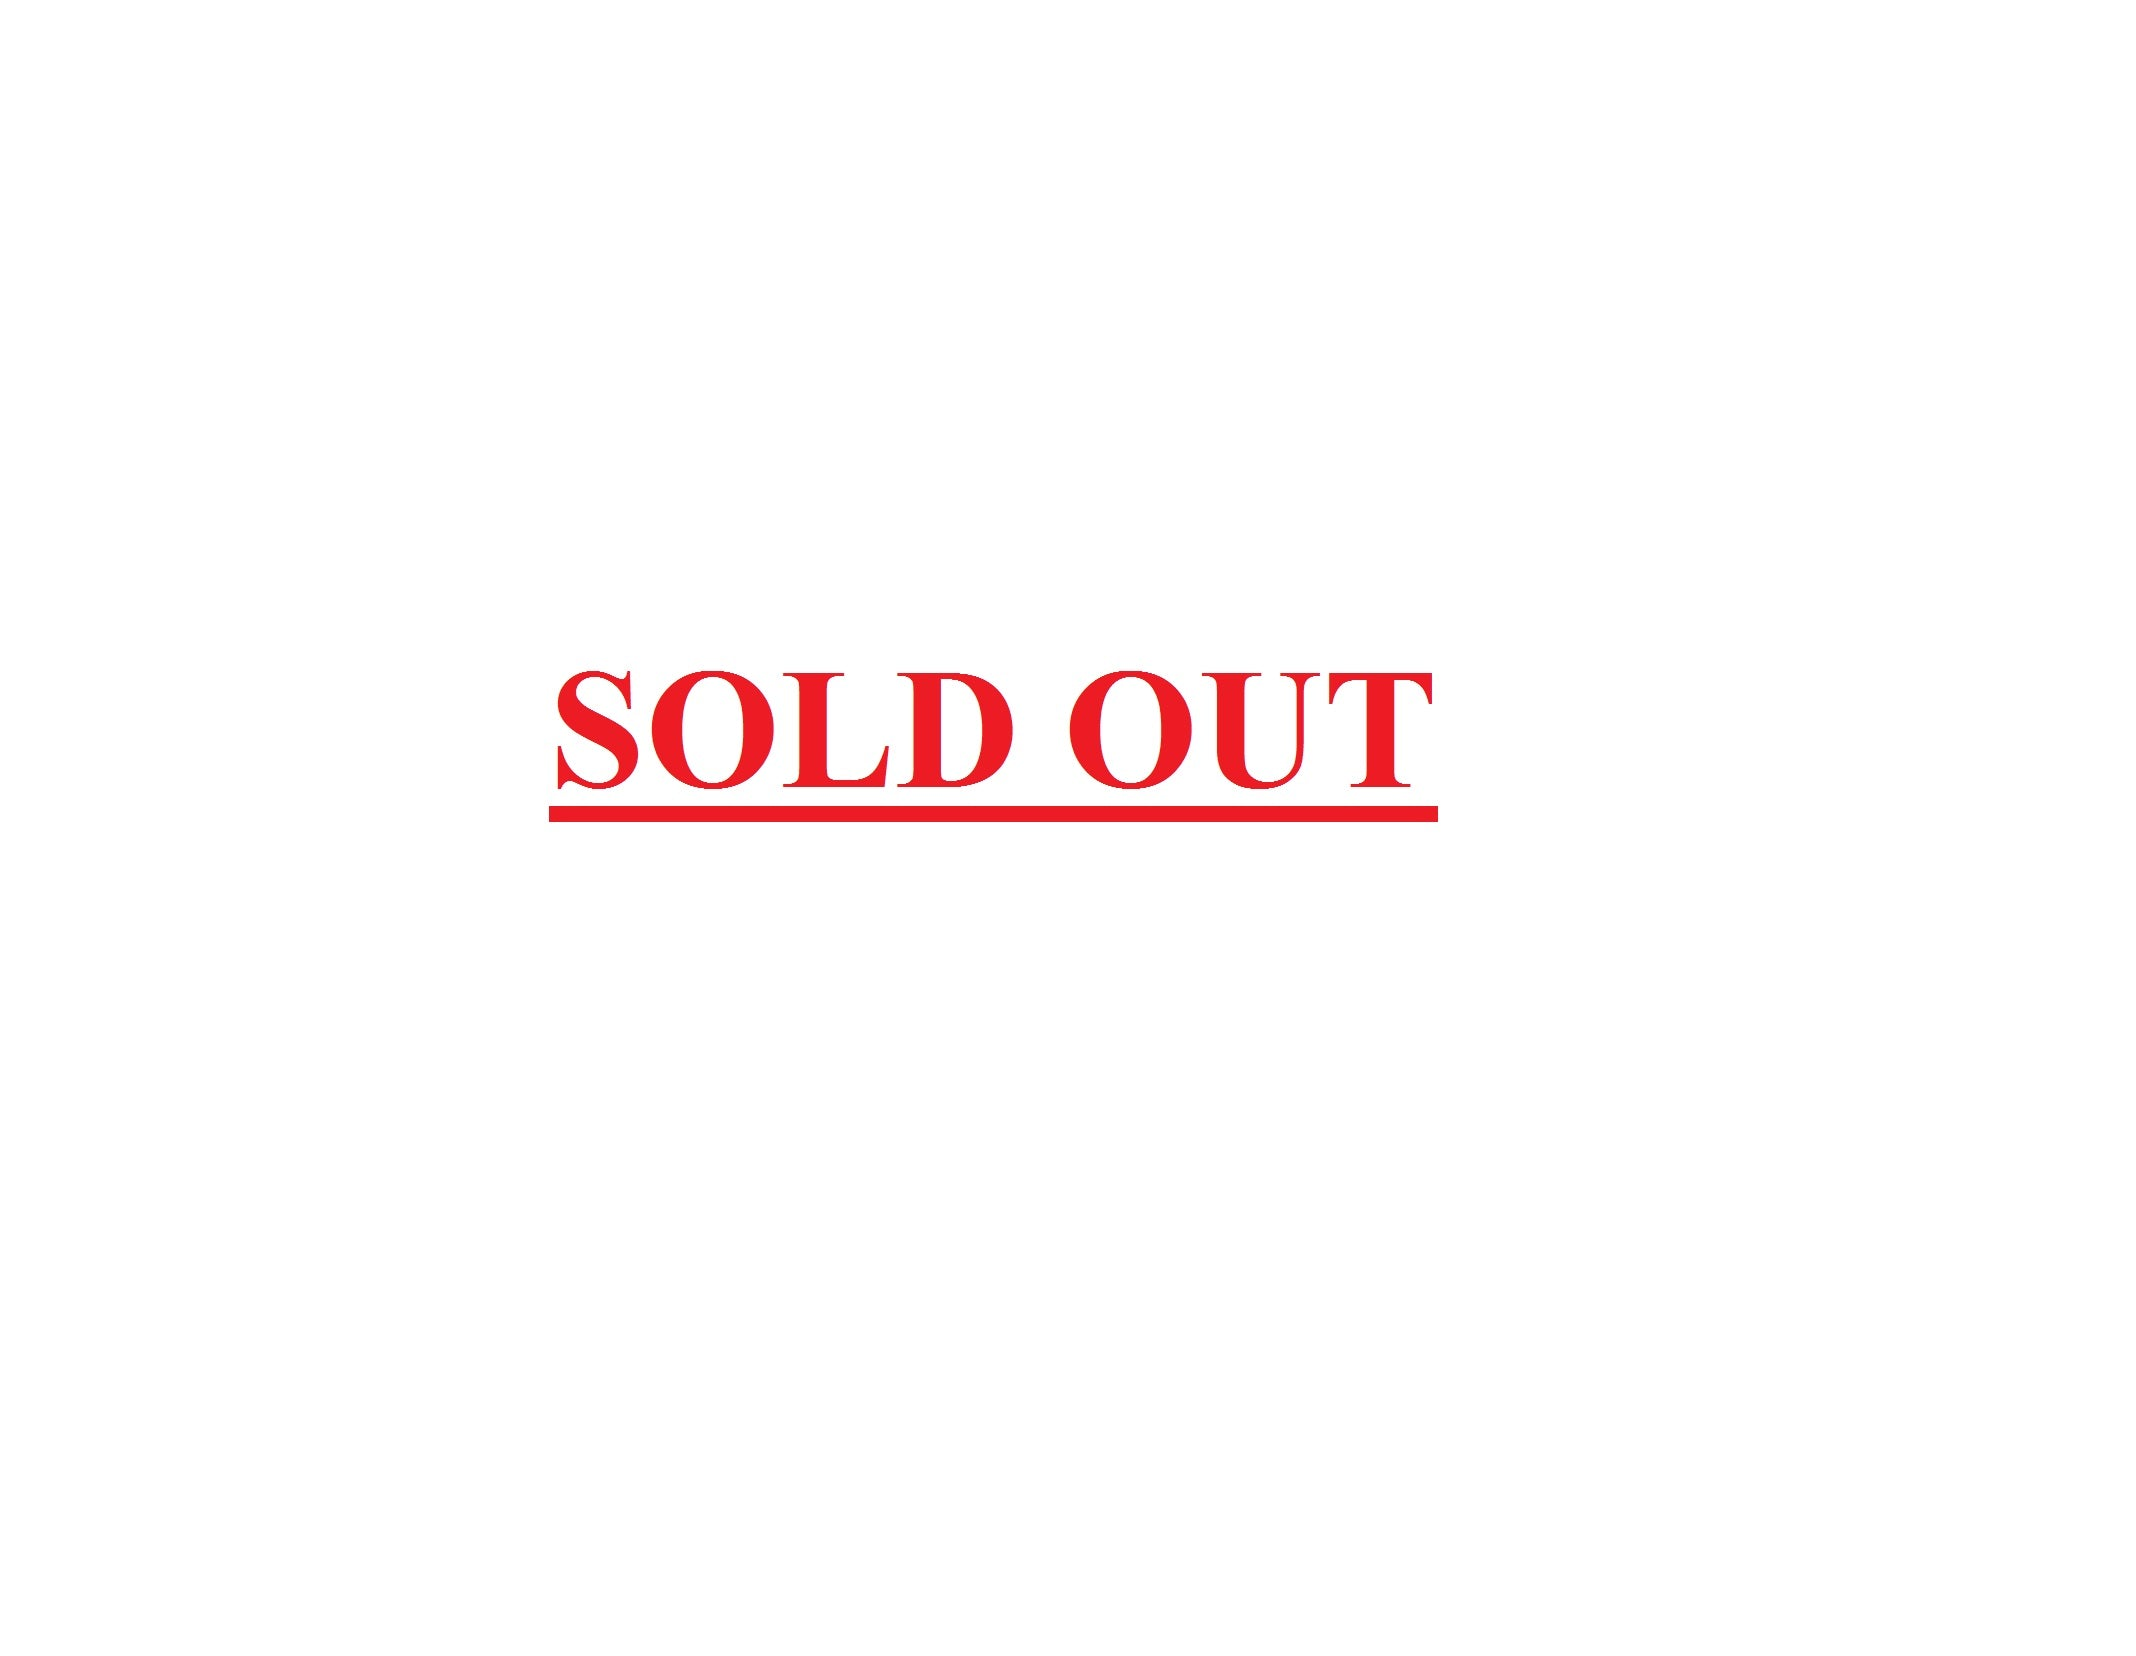 SOLD-OUT-13392